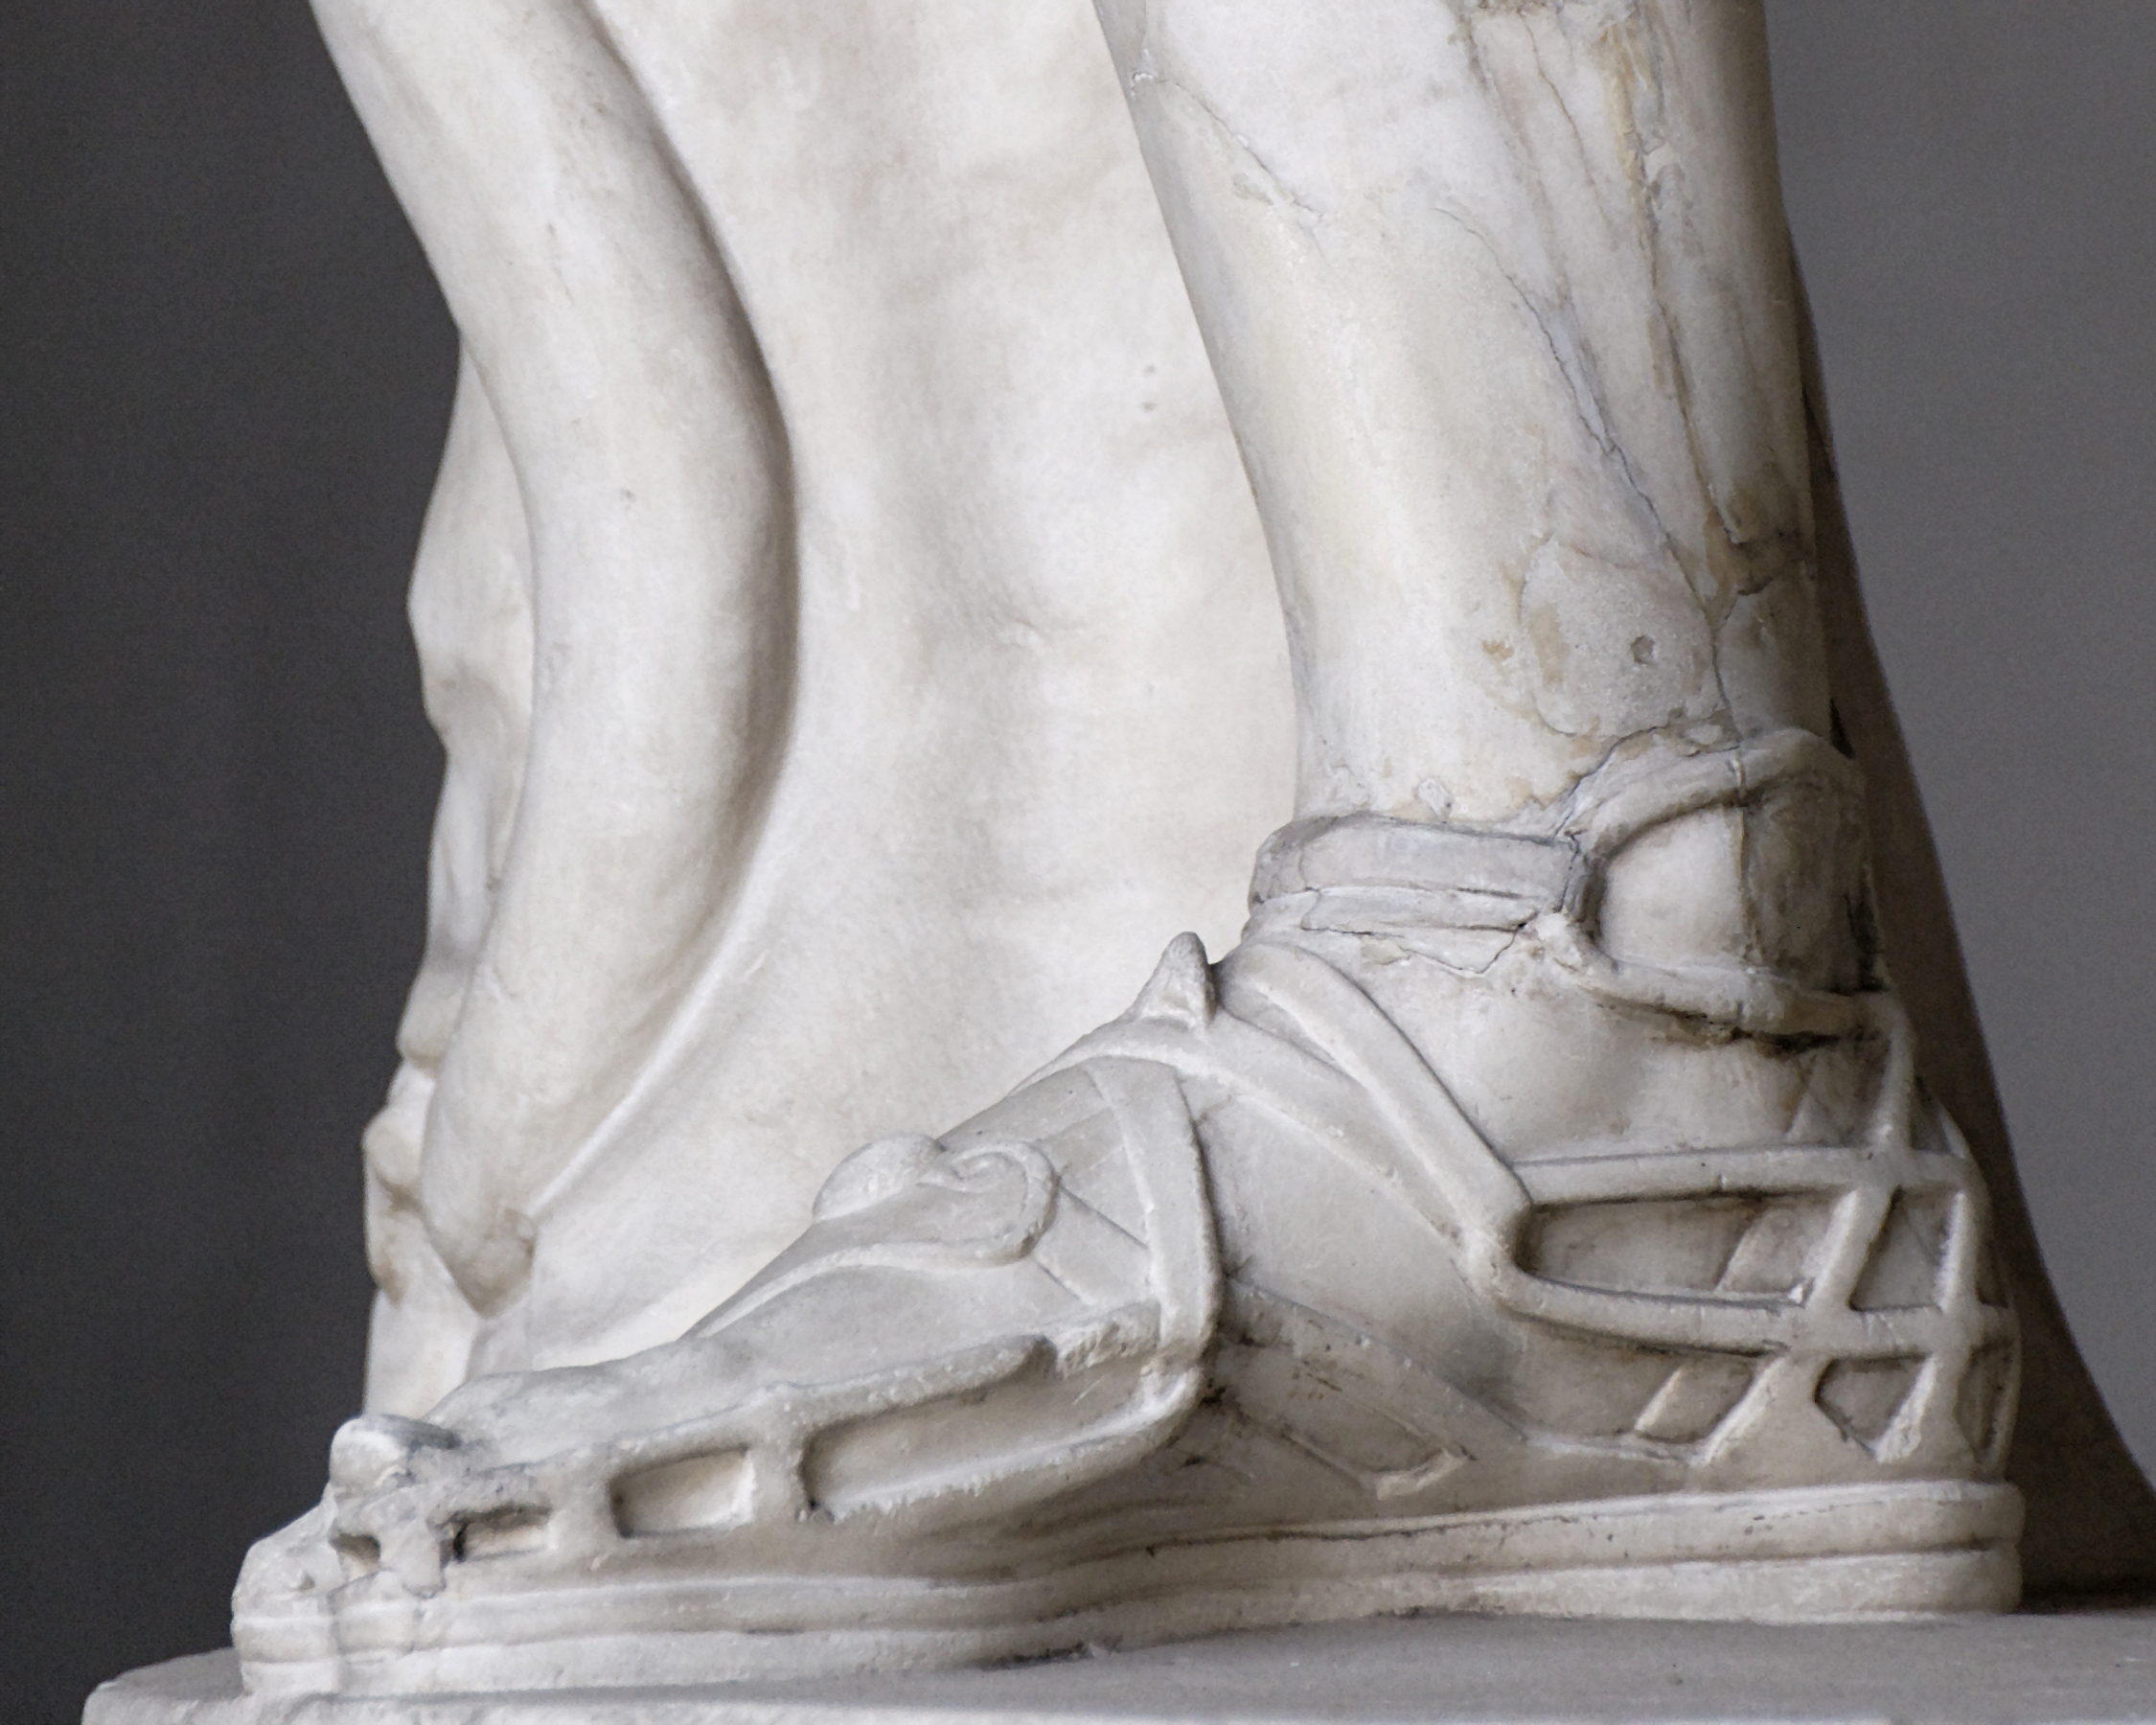 Roman sandal on Belvedere Apollo by Pio Clementino